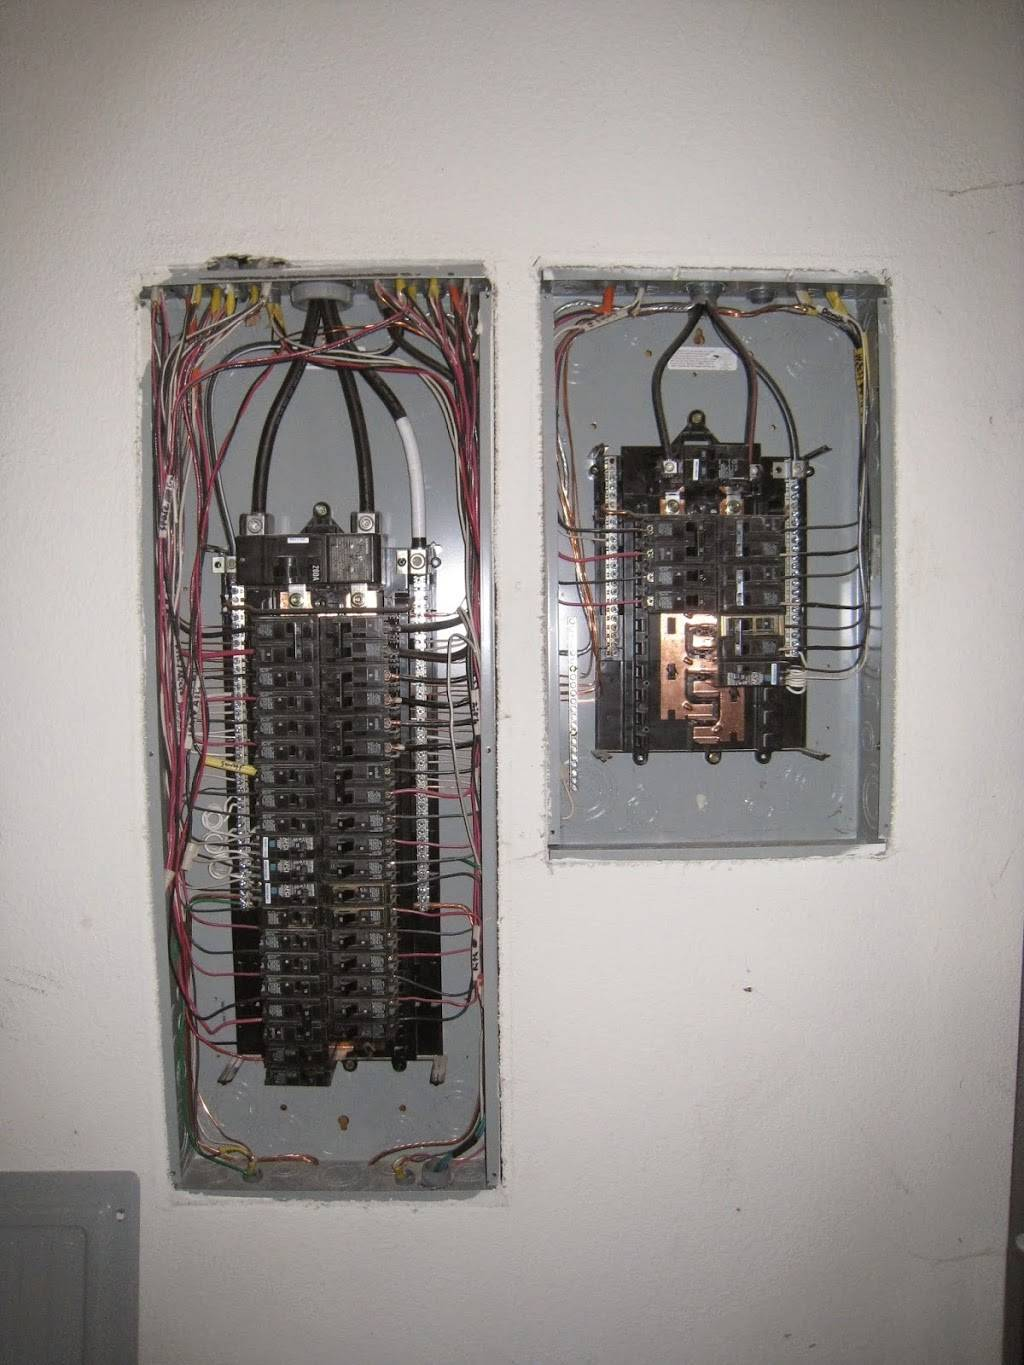 Affinity electric - electrician  | Photo 5 of 6 | Address: 685 Collins Crest St, Gladstone, OR 97027, USA | Phone: (971) 400-5354